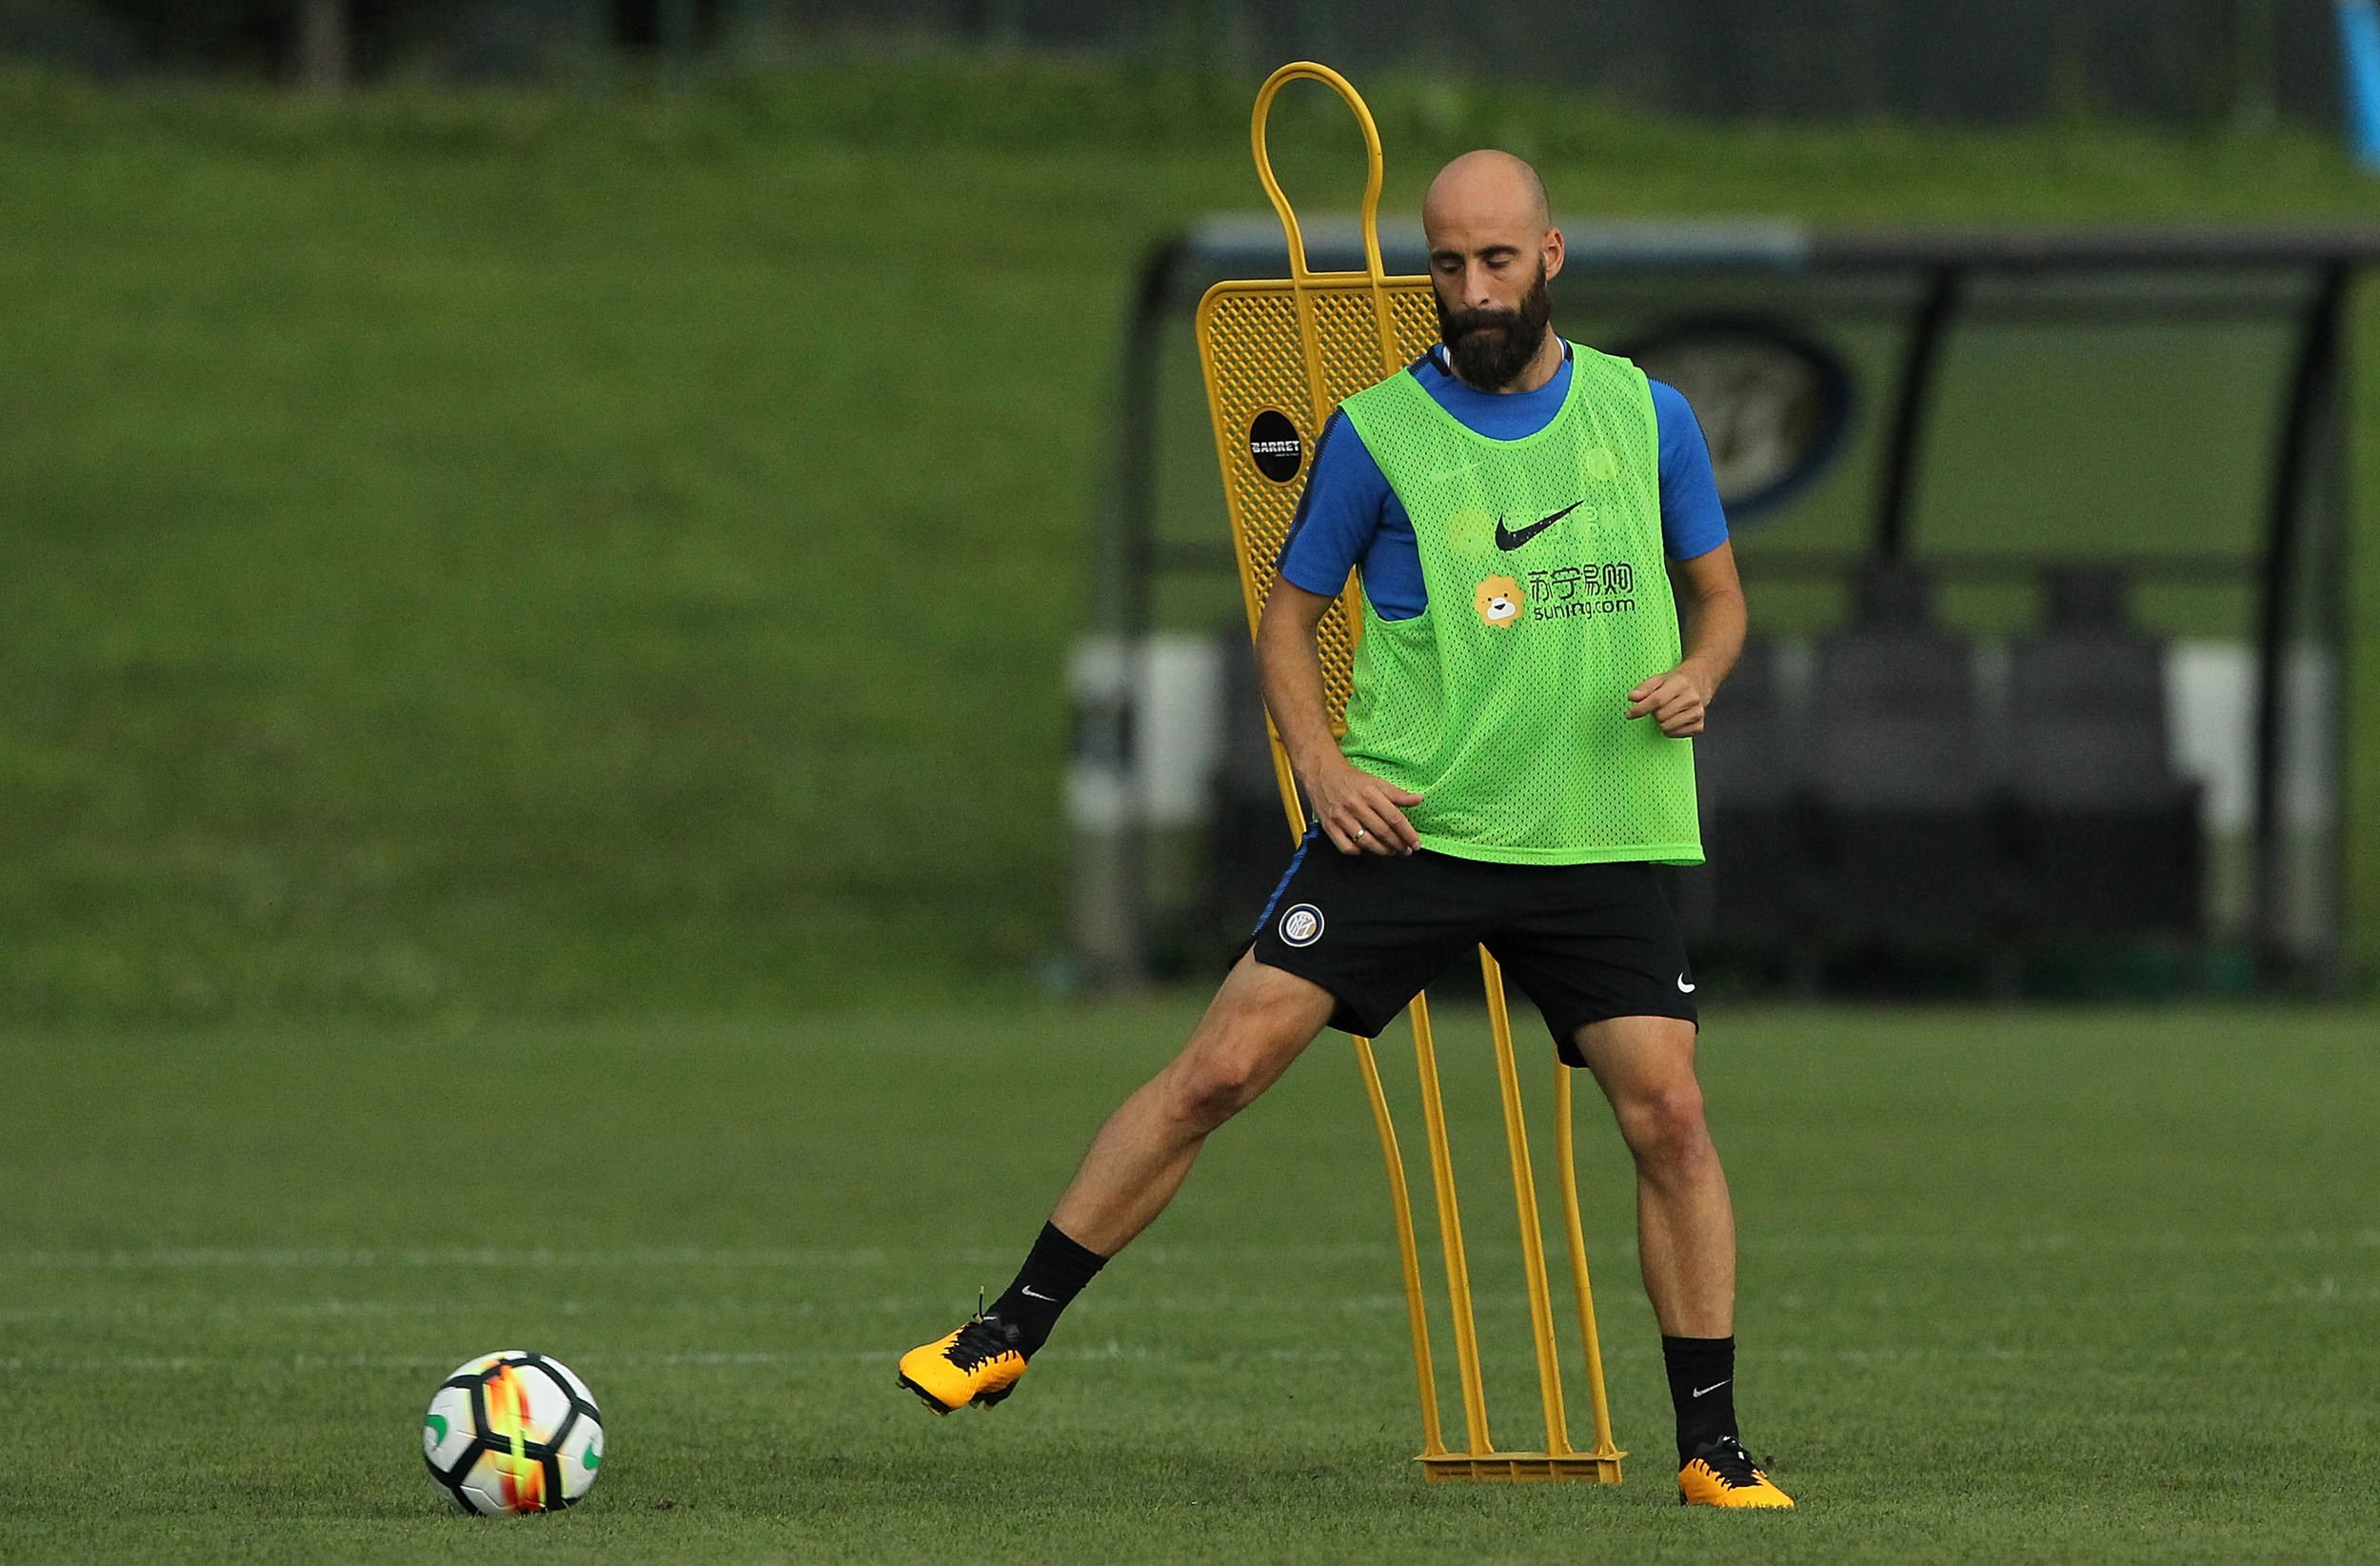 Training begins again at Suning Centre